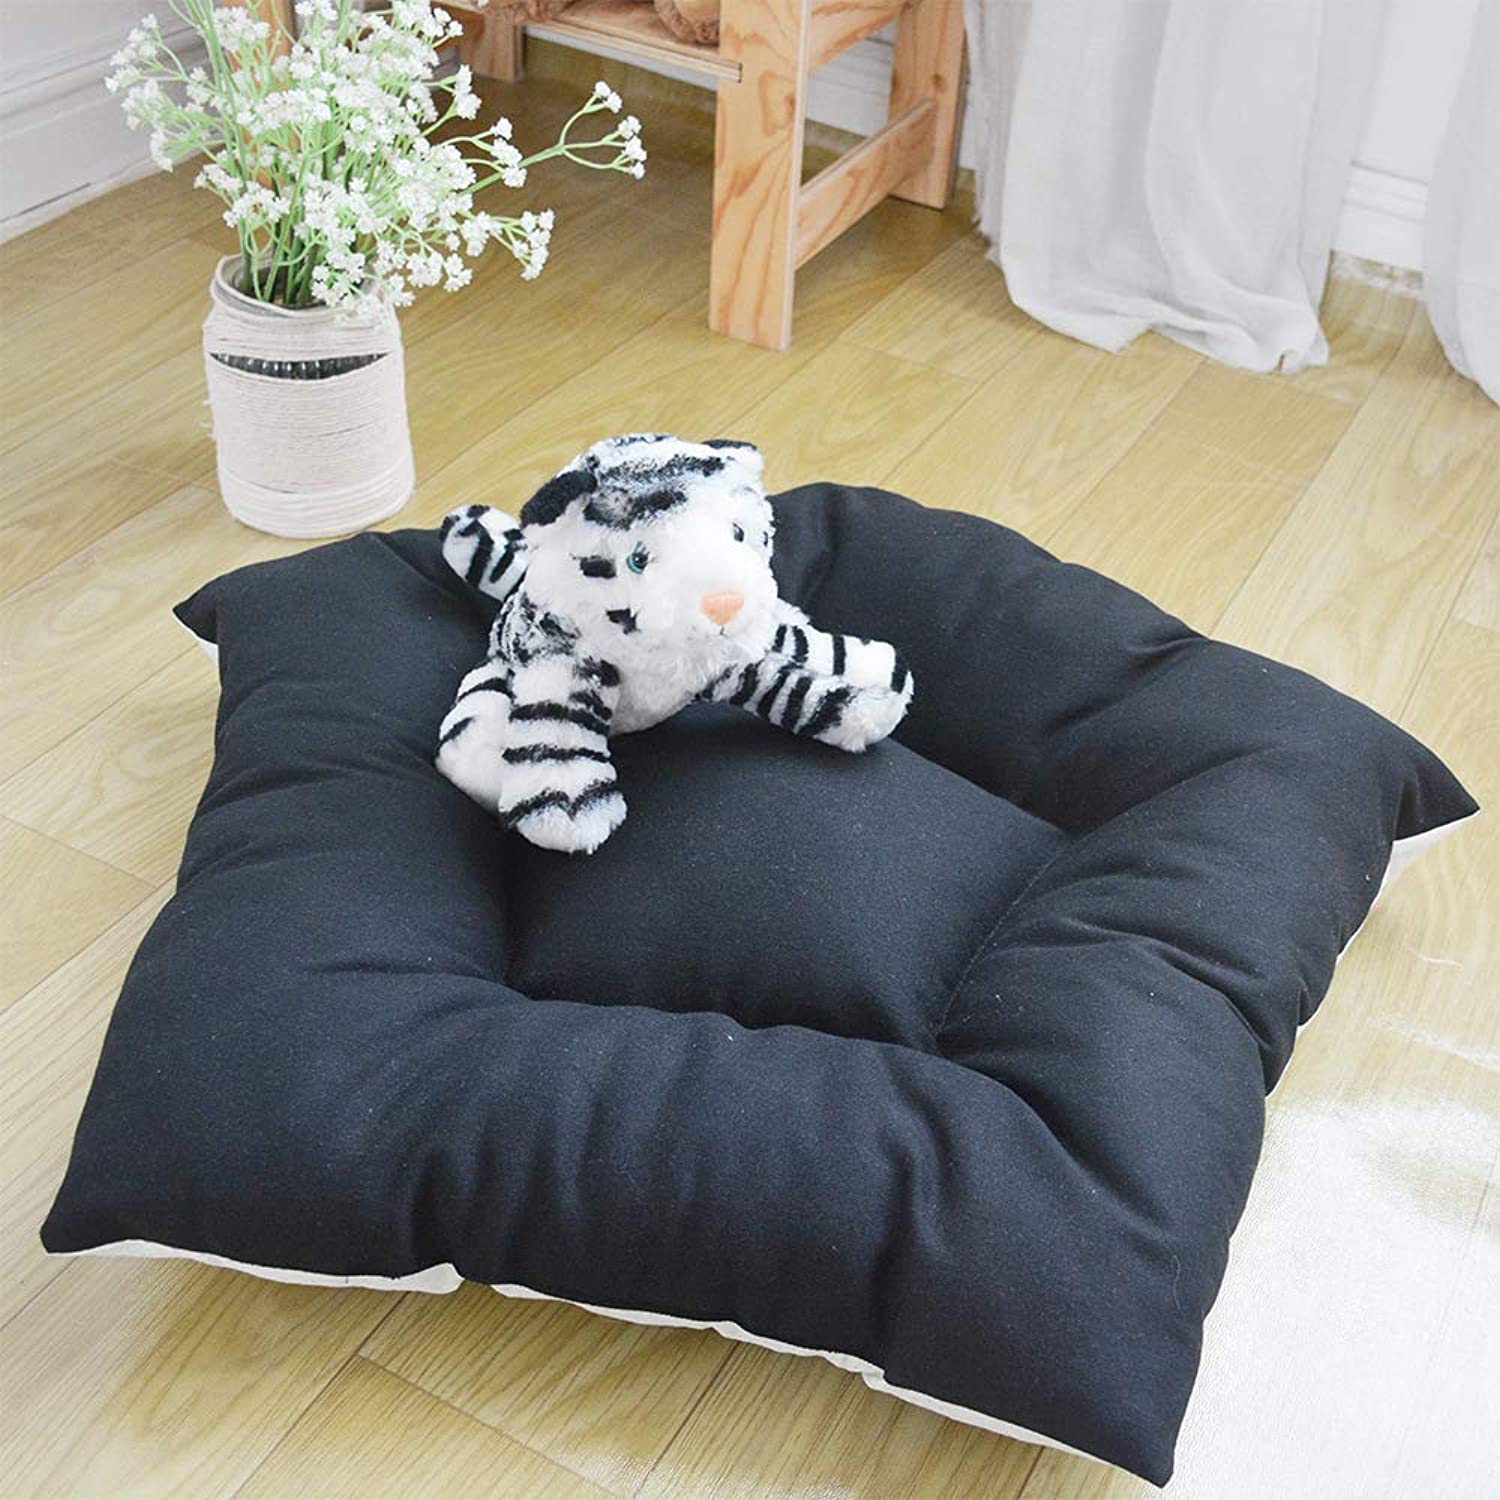 CSDAVIP Teddy Dog Cushion New Winter Dog House Pet Bread Cushion Dog Cotton Cushion Winter Cat Cushion VIP Teddy Dog Cushion,Spot a bun